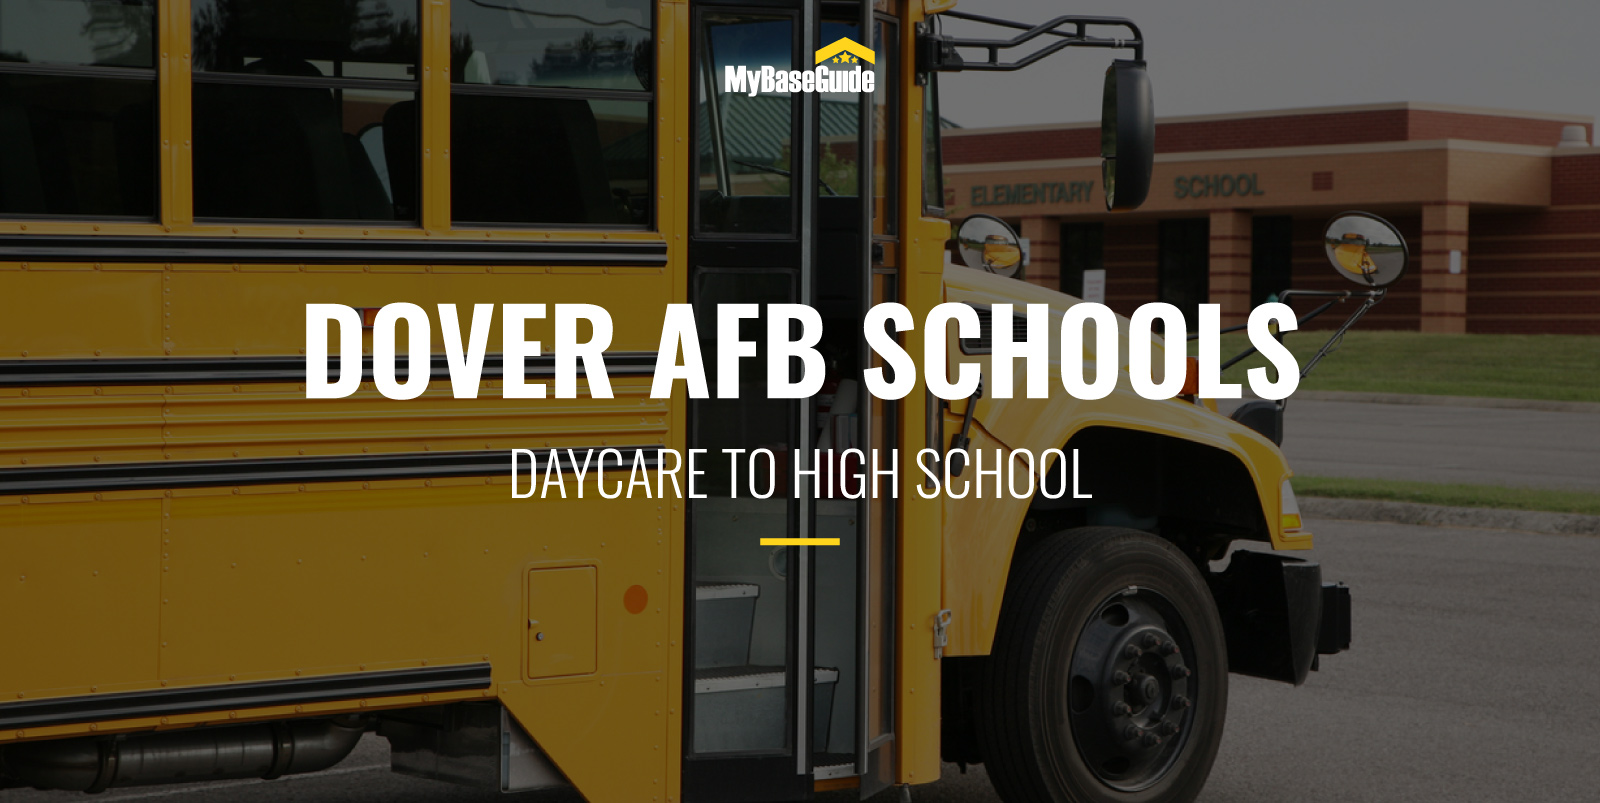 Dover AFB Schools: Daycare - High School